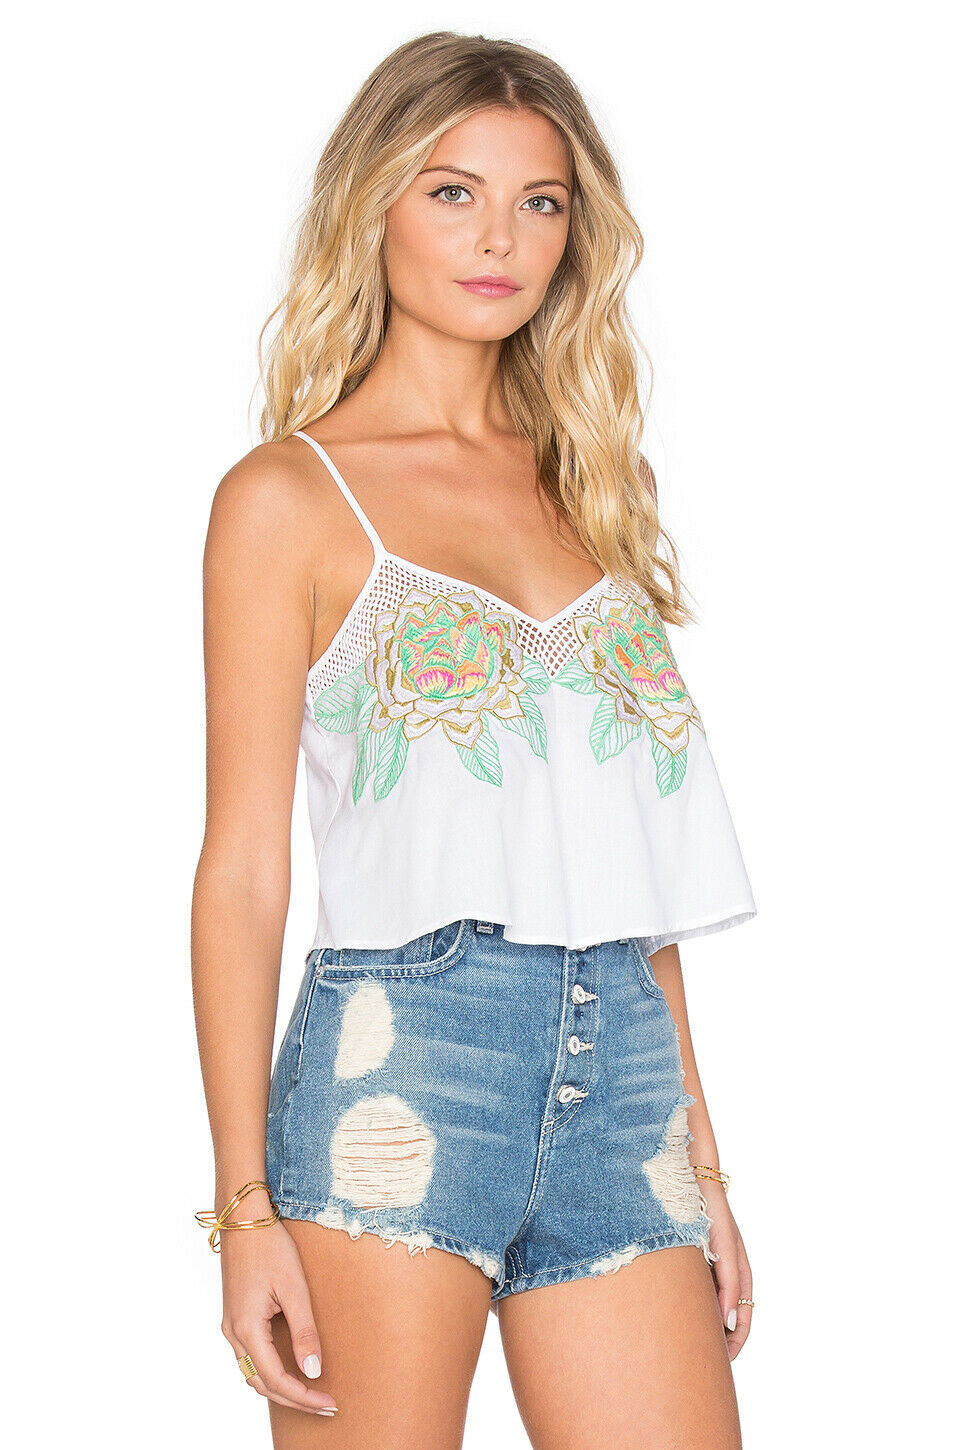 Y  MARA HOFFMAN Weiß FLORAL EMBROIDErot CROP TOP Rosa Grün XS EXTRA SMALL